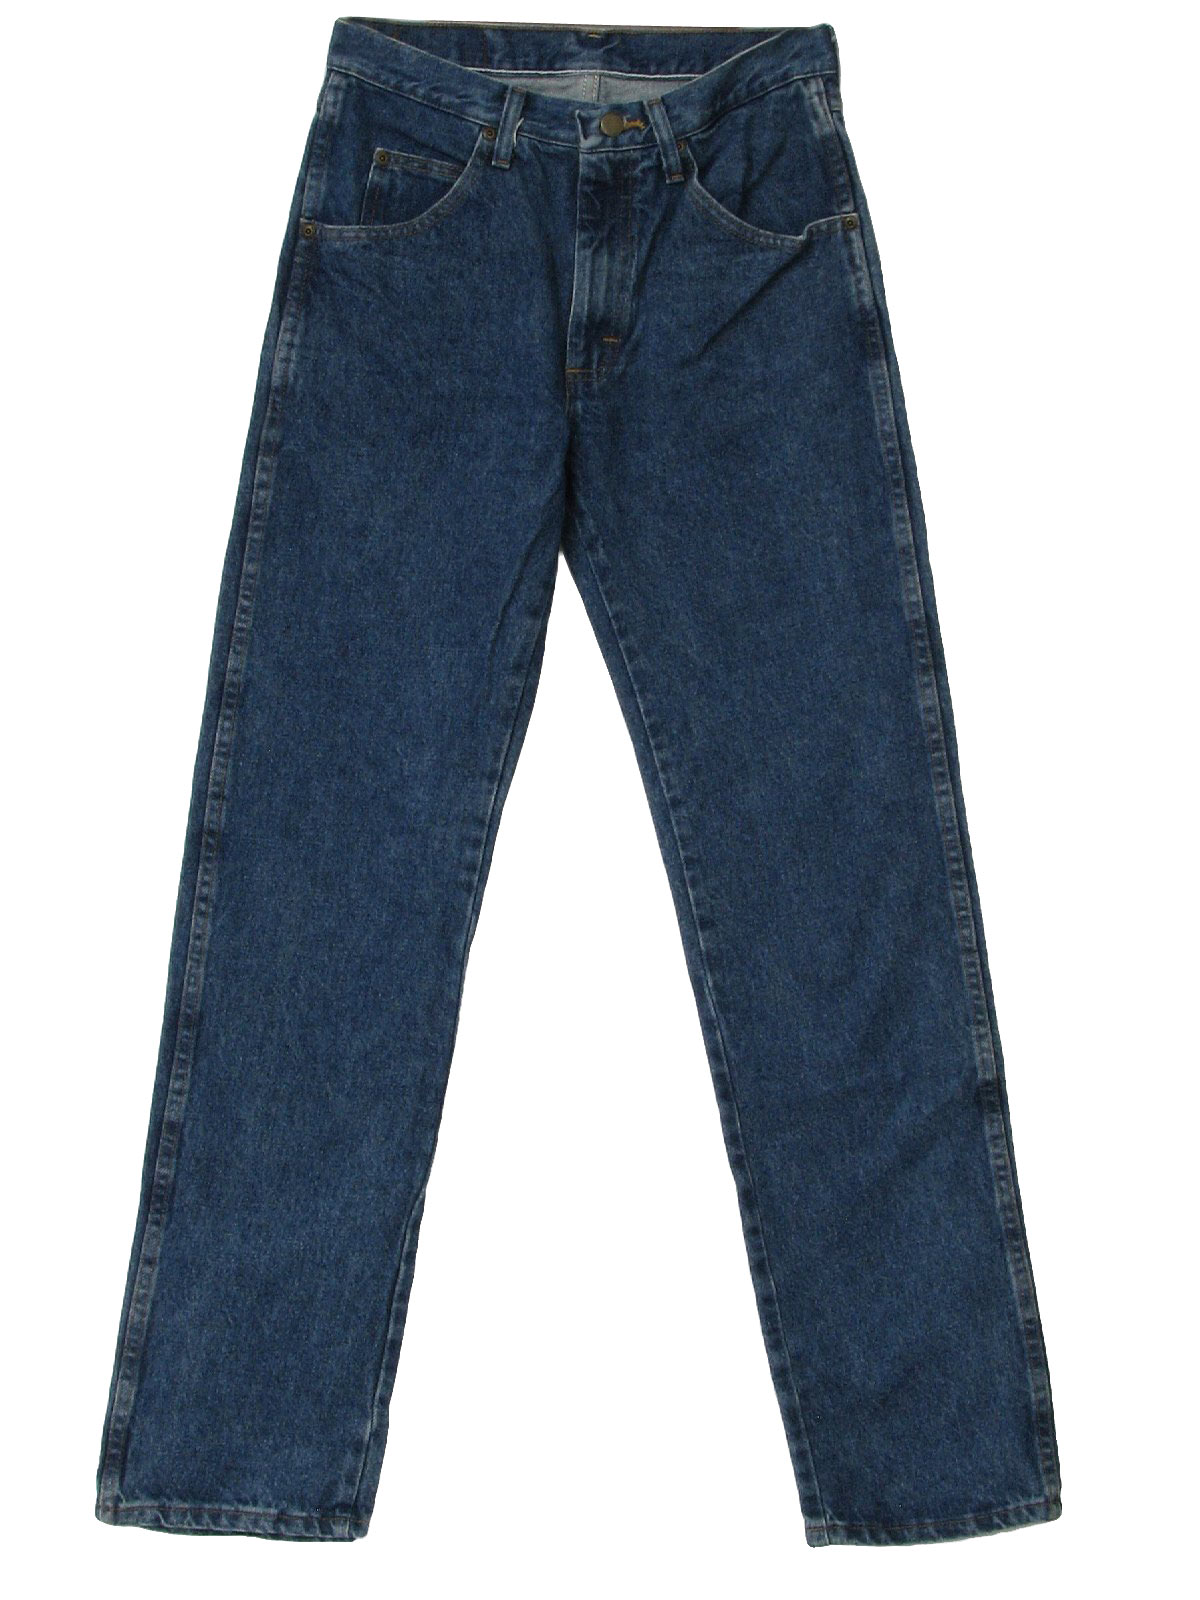 Vintage 90s Pants 90s -Wrangler- Mens Blue Cotton Denim Wicked 90s Jeans With Classic Five ...